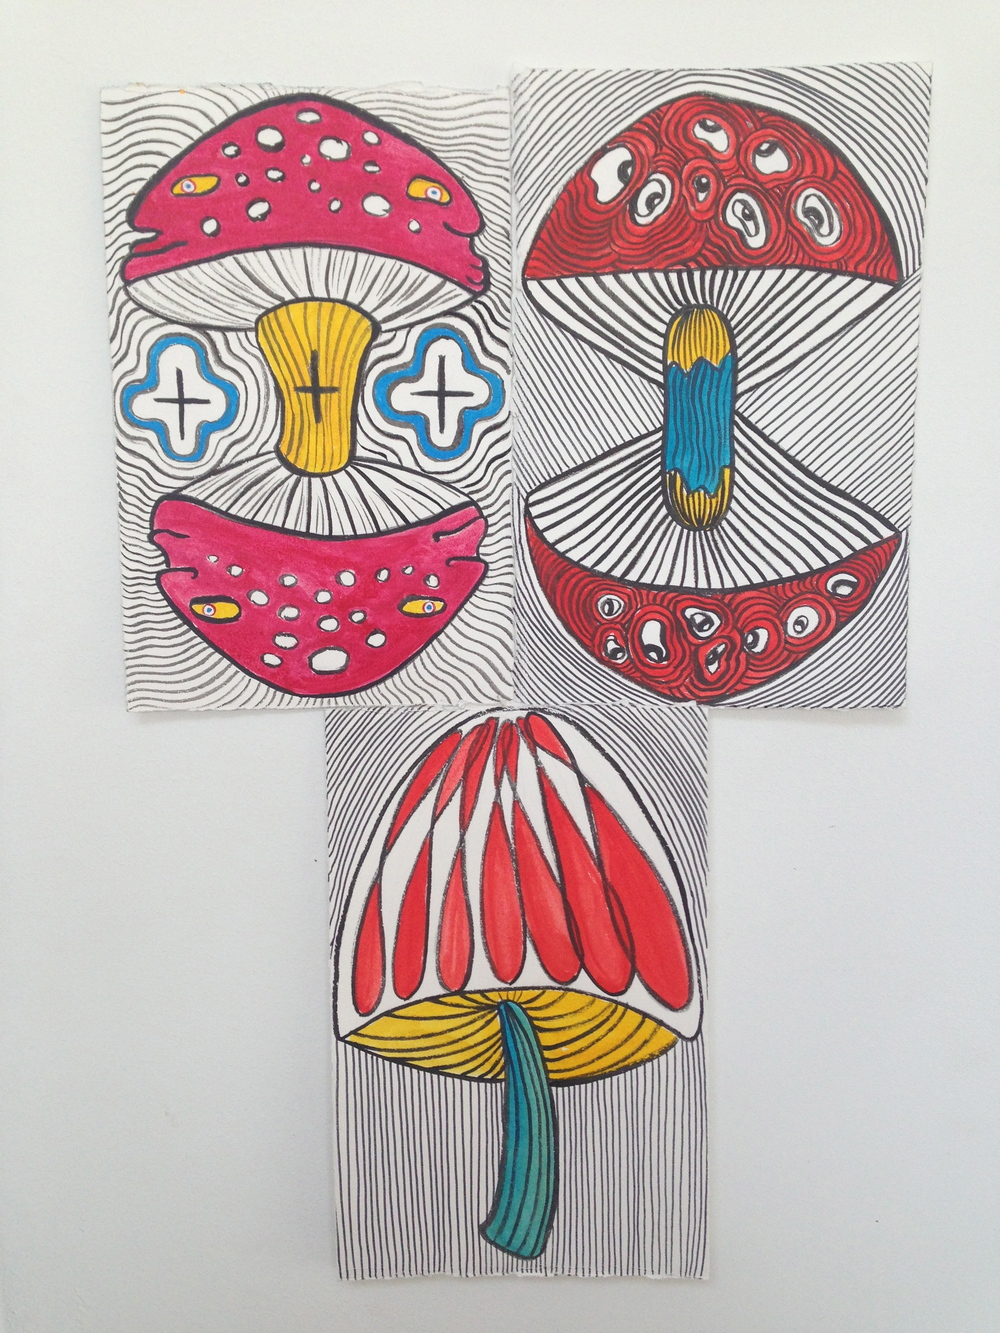 """Shrooms""  7.5"" x 11""  Ink and watercolor on paper  NFS - In the collection of Will Sheldon & Taylor Trabulus"